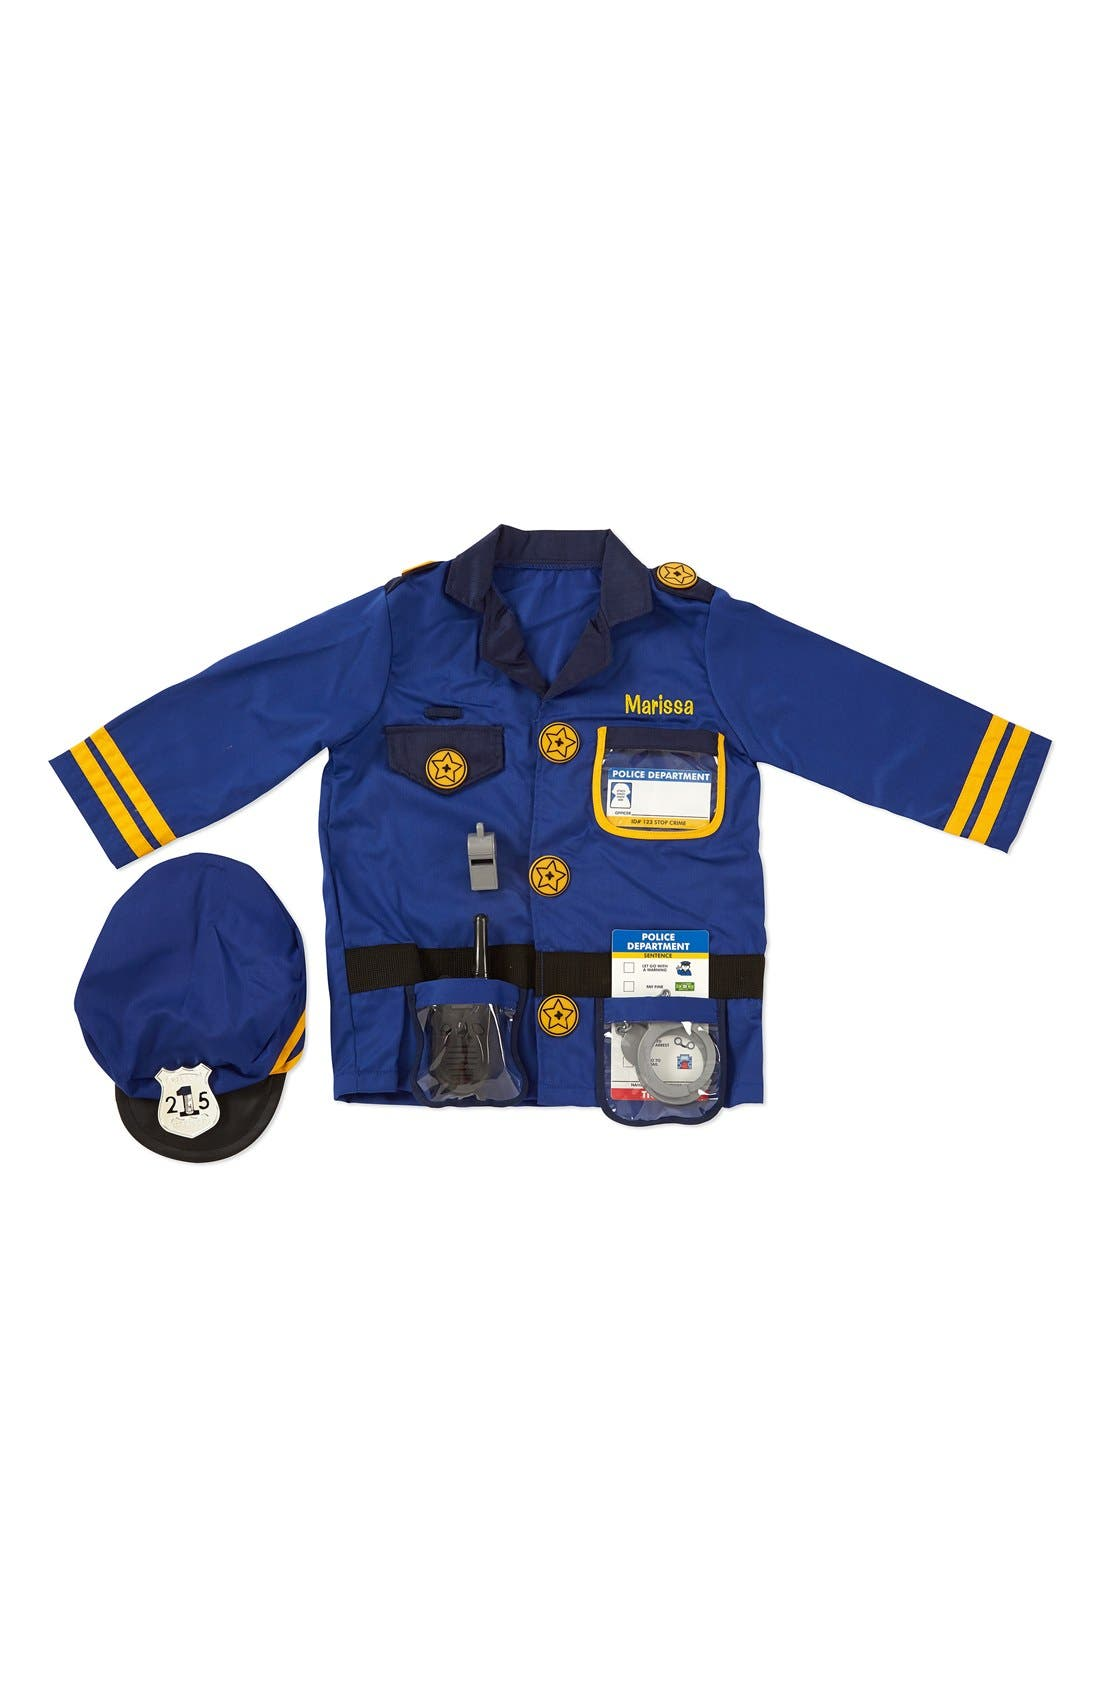 Alternate Image 1 Selected - Melissa & Doug Personalized Police Officer Costume Set (Little Kid)